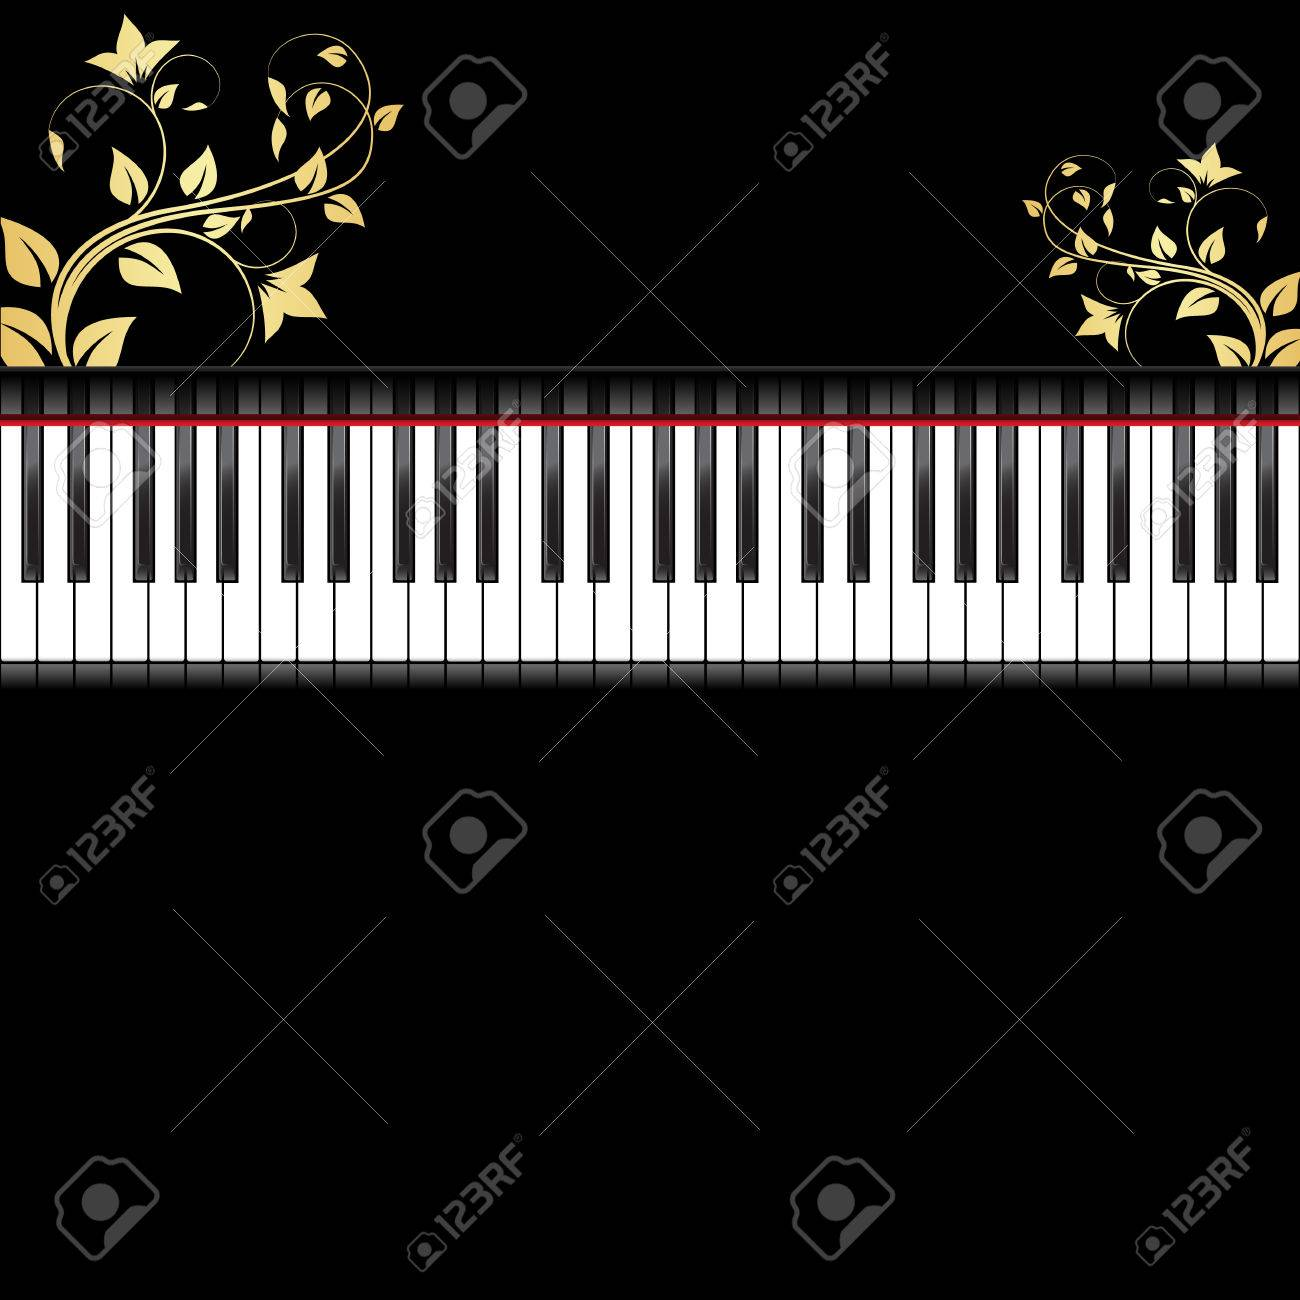 Piano Black Background Black Piano Decorated by Gold